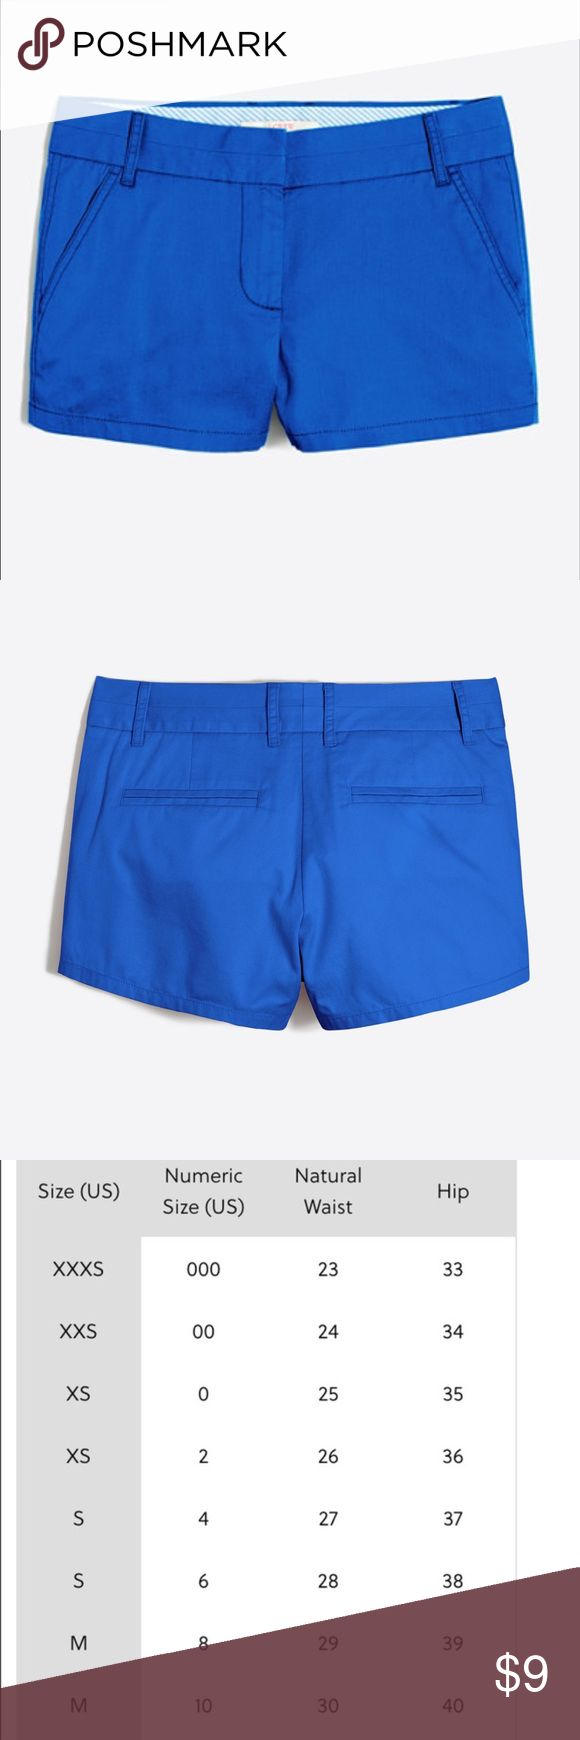 J CREW royal blue broken in shorts Royal Blue color. These are the chinos from the J. Crew store.  They look the first picture and the second picture there is one button on the right pocket, check out the pictures for the condition J. Crew Shorts Bermudas